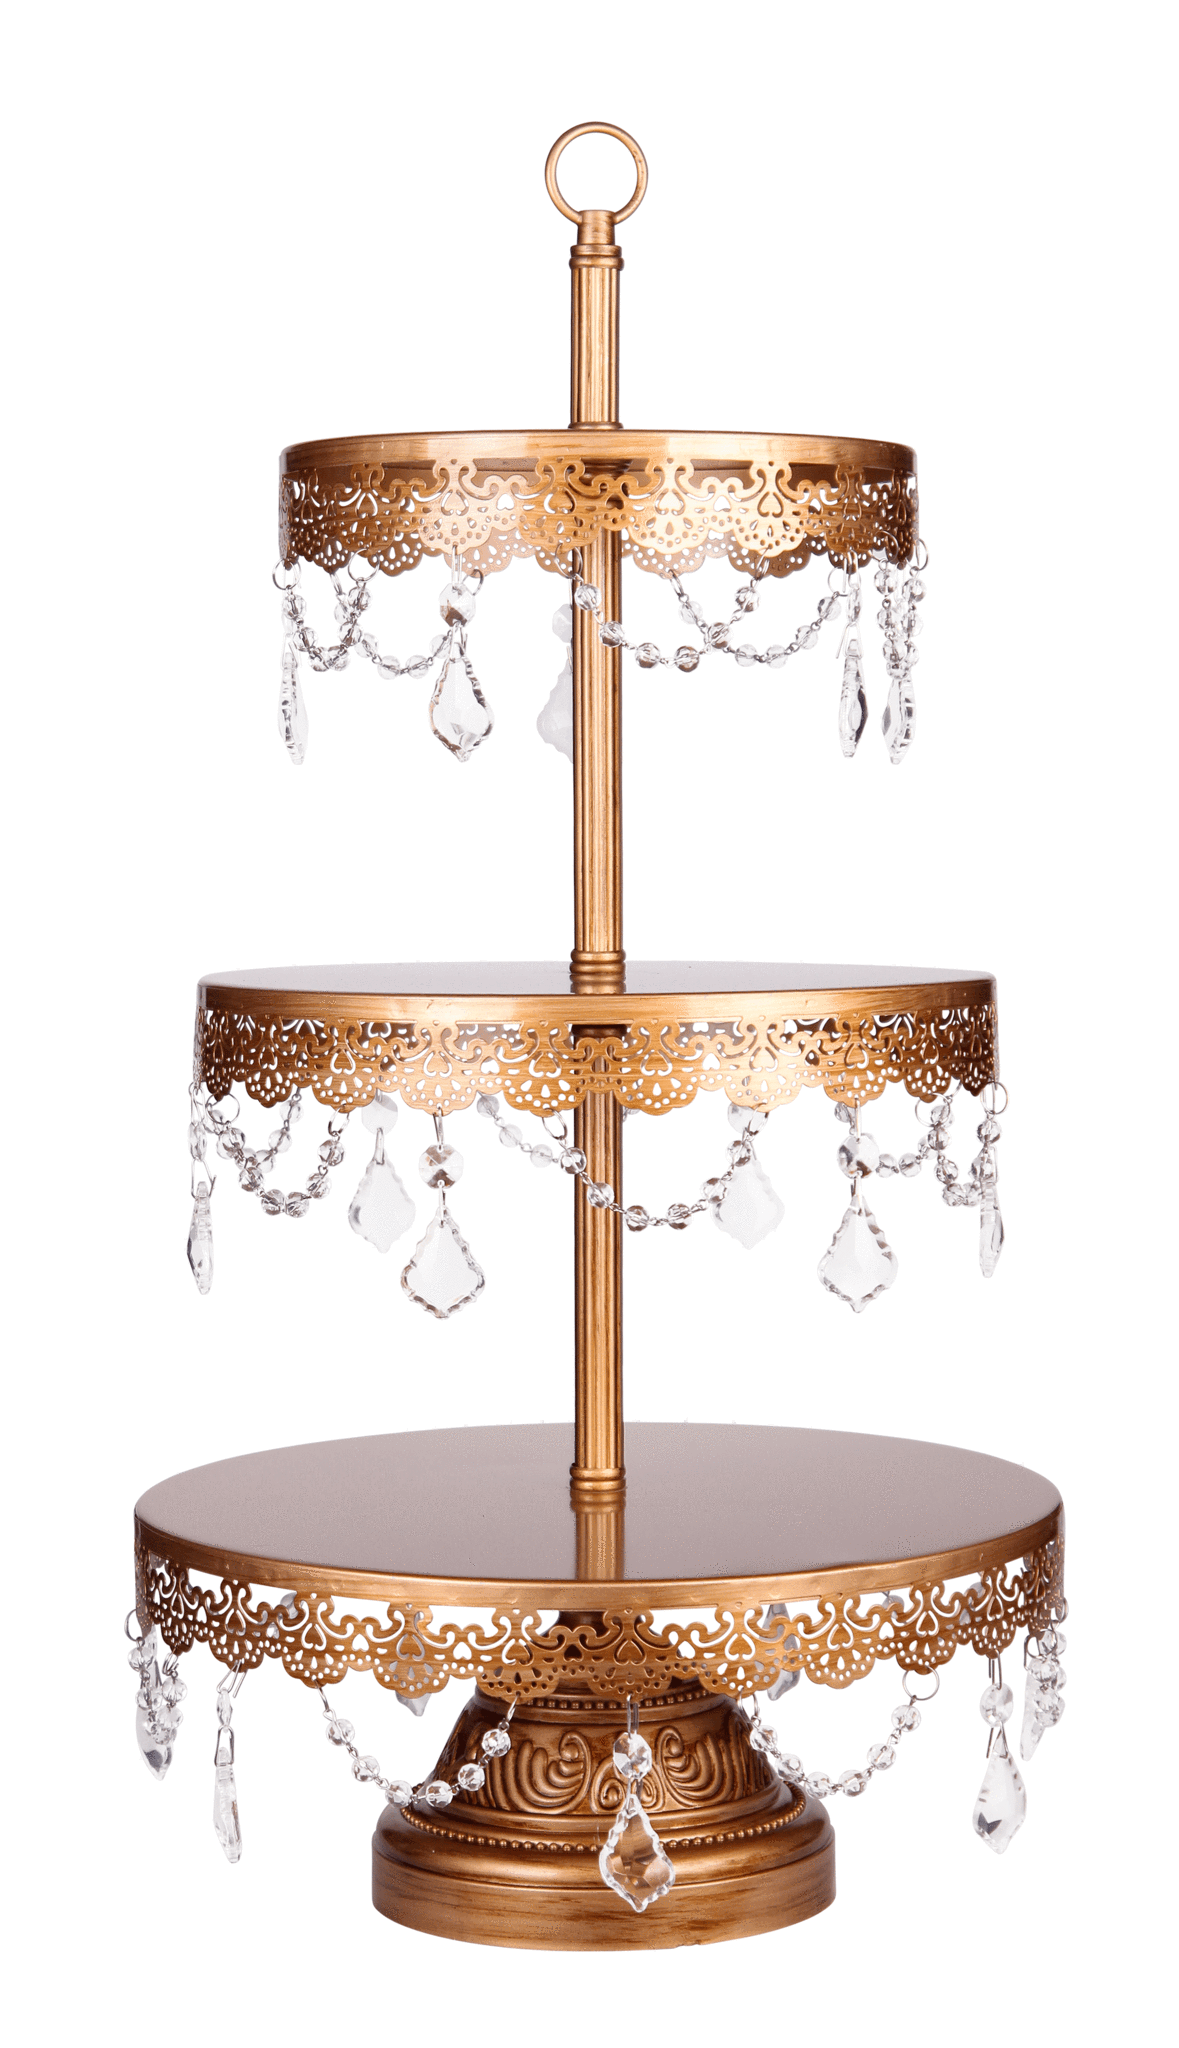 This 3 Tier Crystal Draped Dessert Stand Is Perfect For Showcasing Your Favorite Cupcakes And Desserts At Mesas De Postres Decoracion Mesas Decoracion De Unas